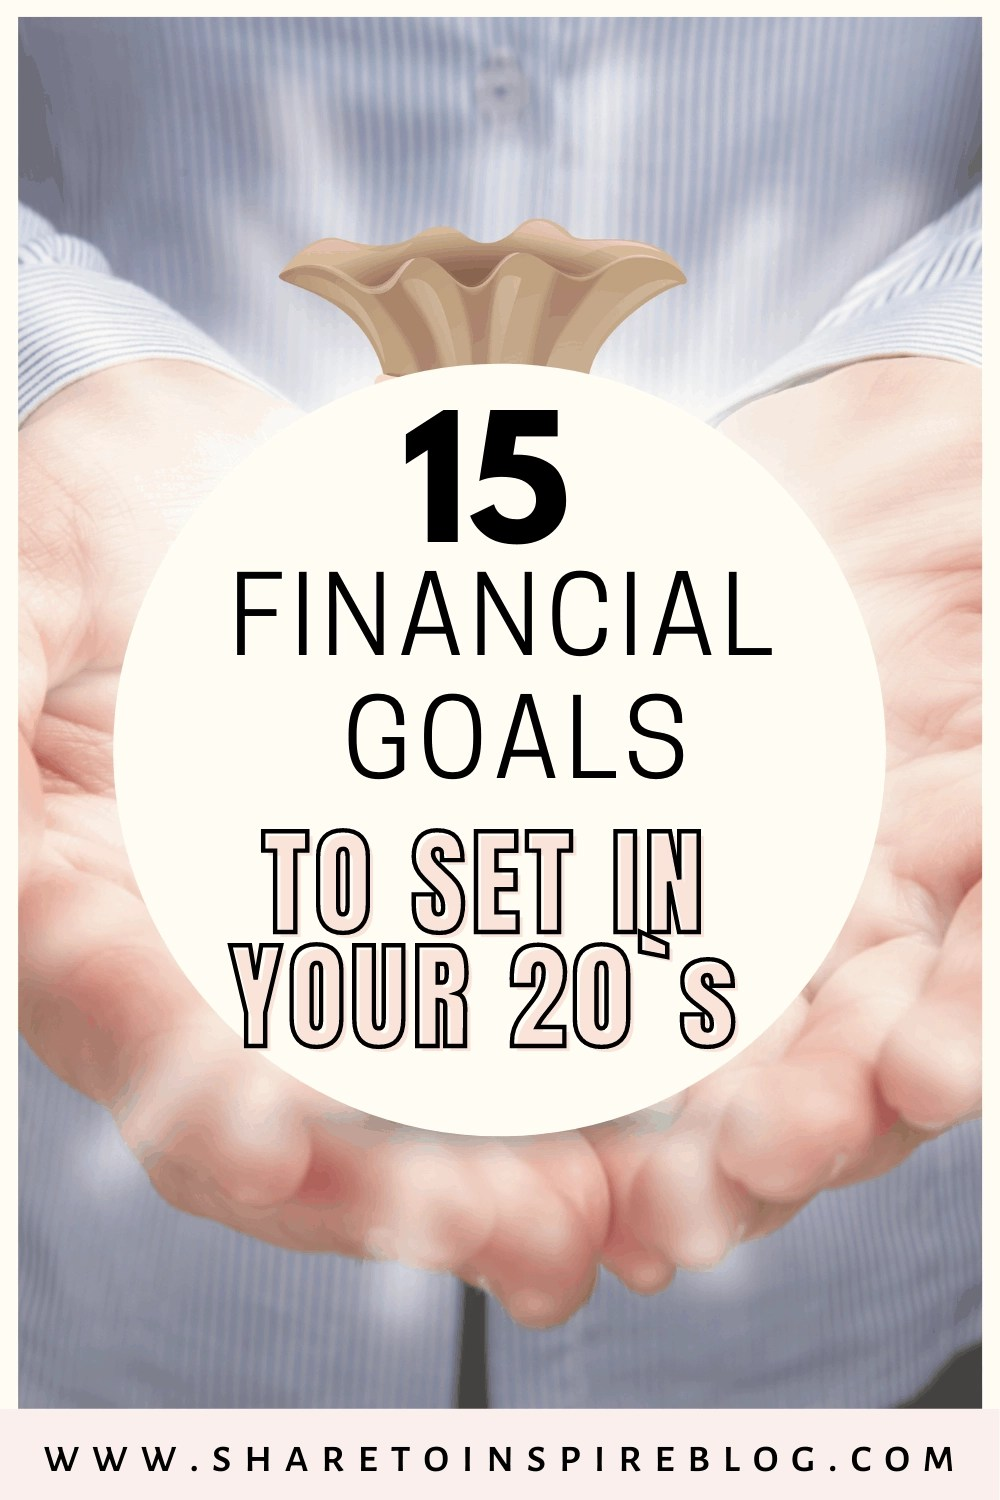 financial goals list to set in your 20`s pinterest pin